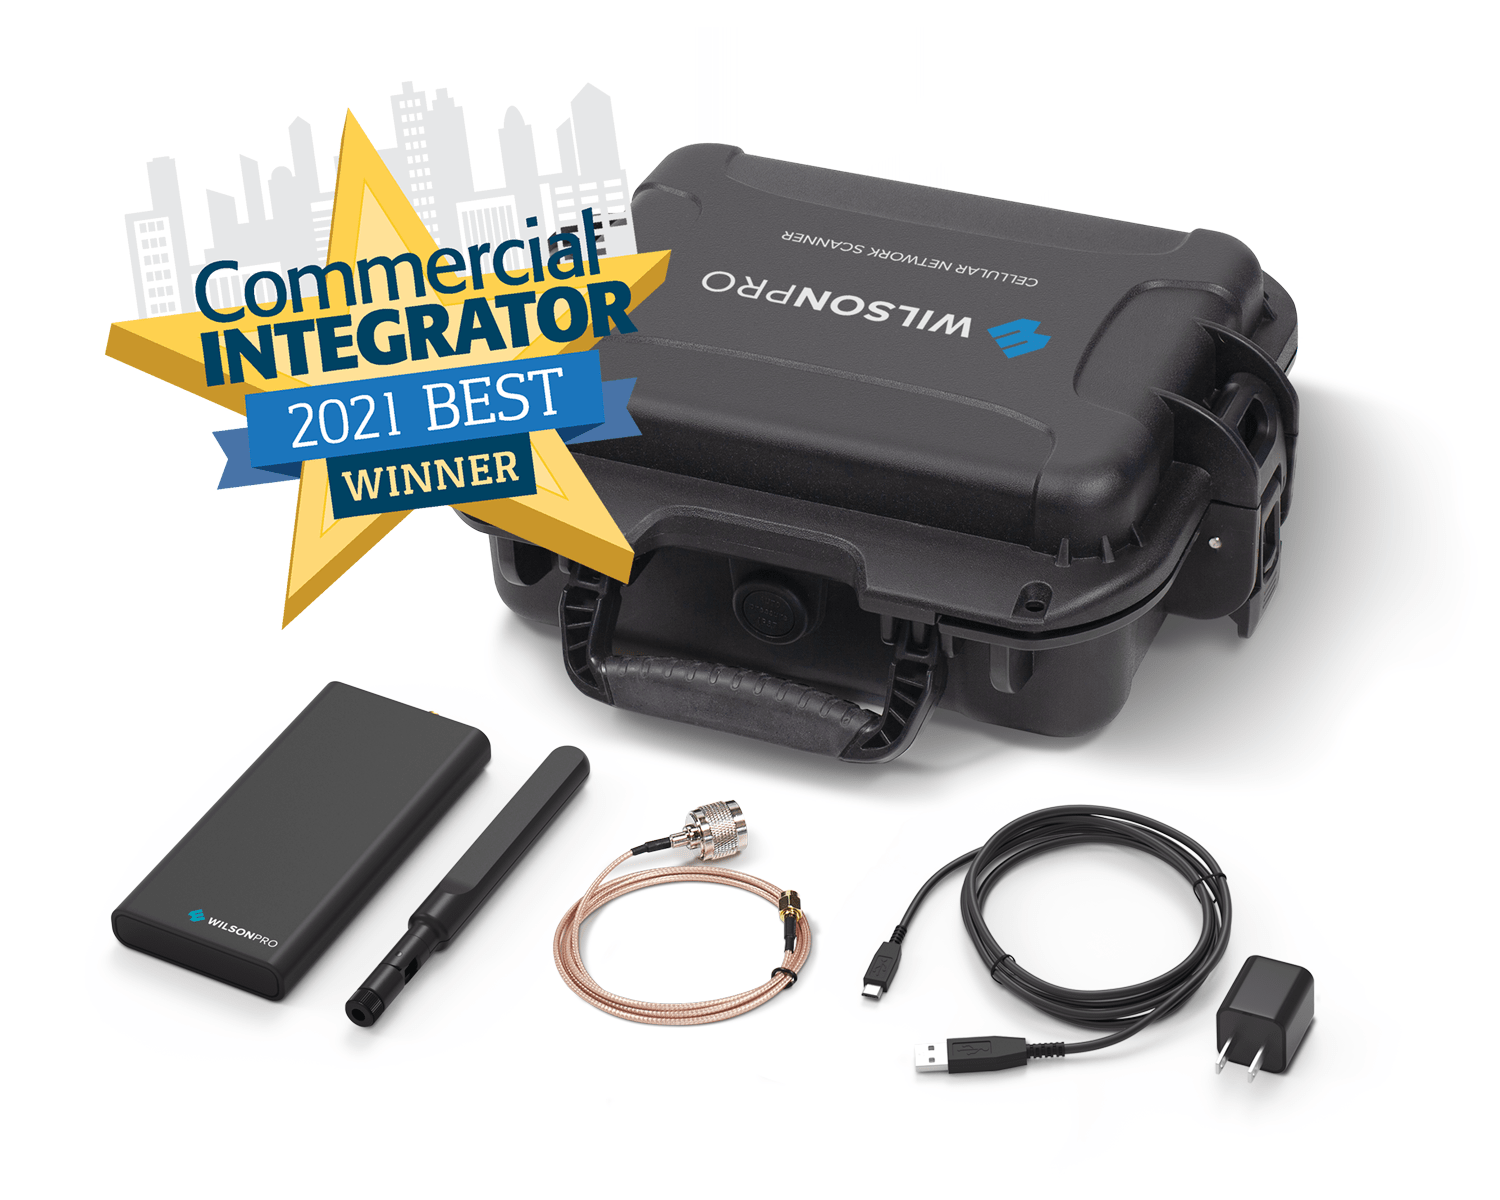 https://assets.wilsonelectronics.com/m/369ca6b33f5c6a49/original/cell-linq-pro-meter-case-and-contents-web.png